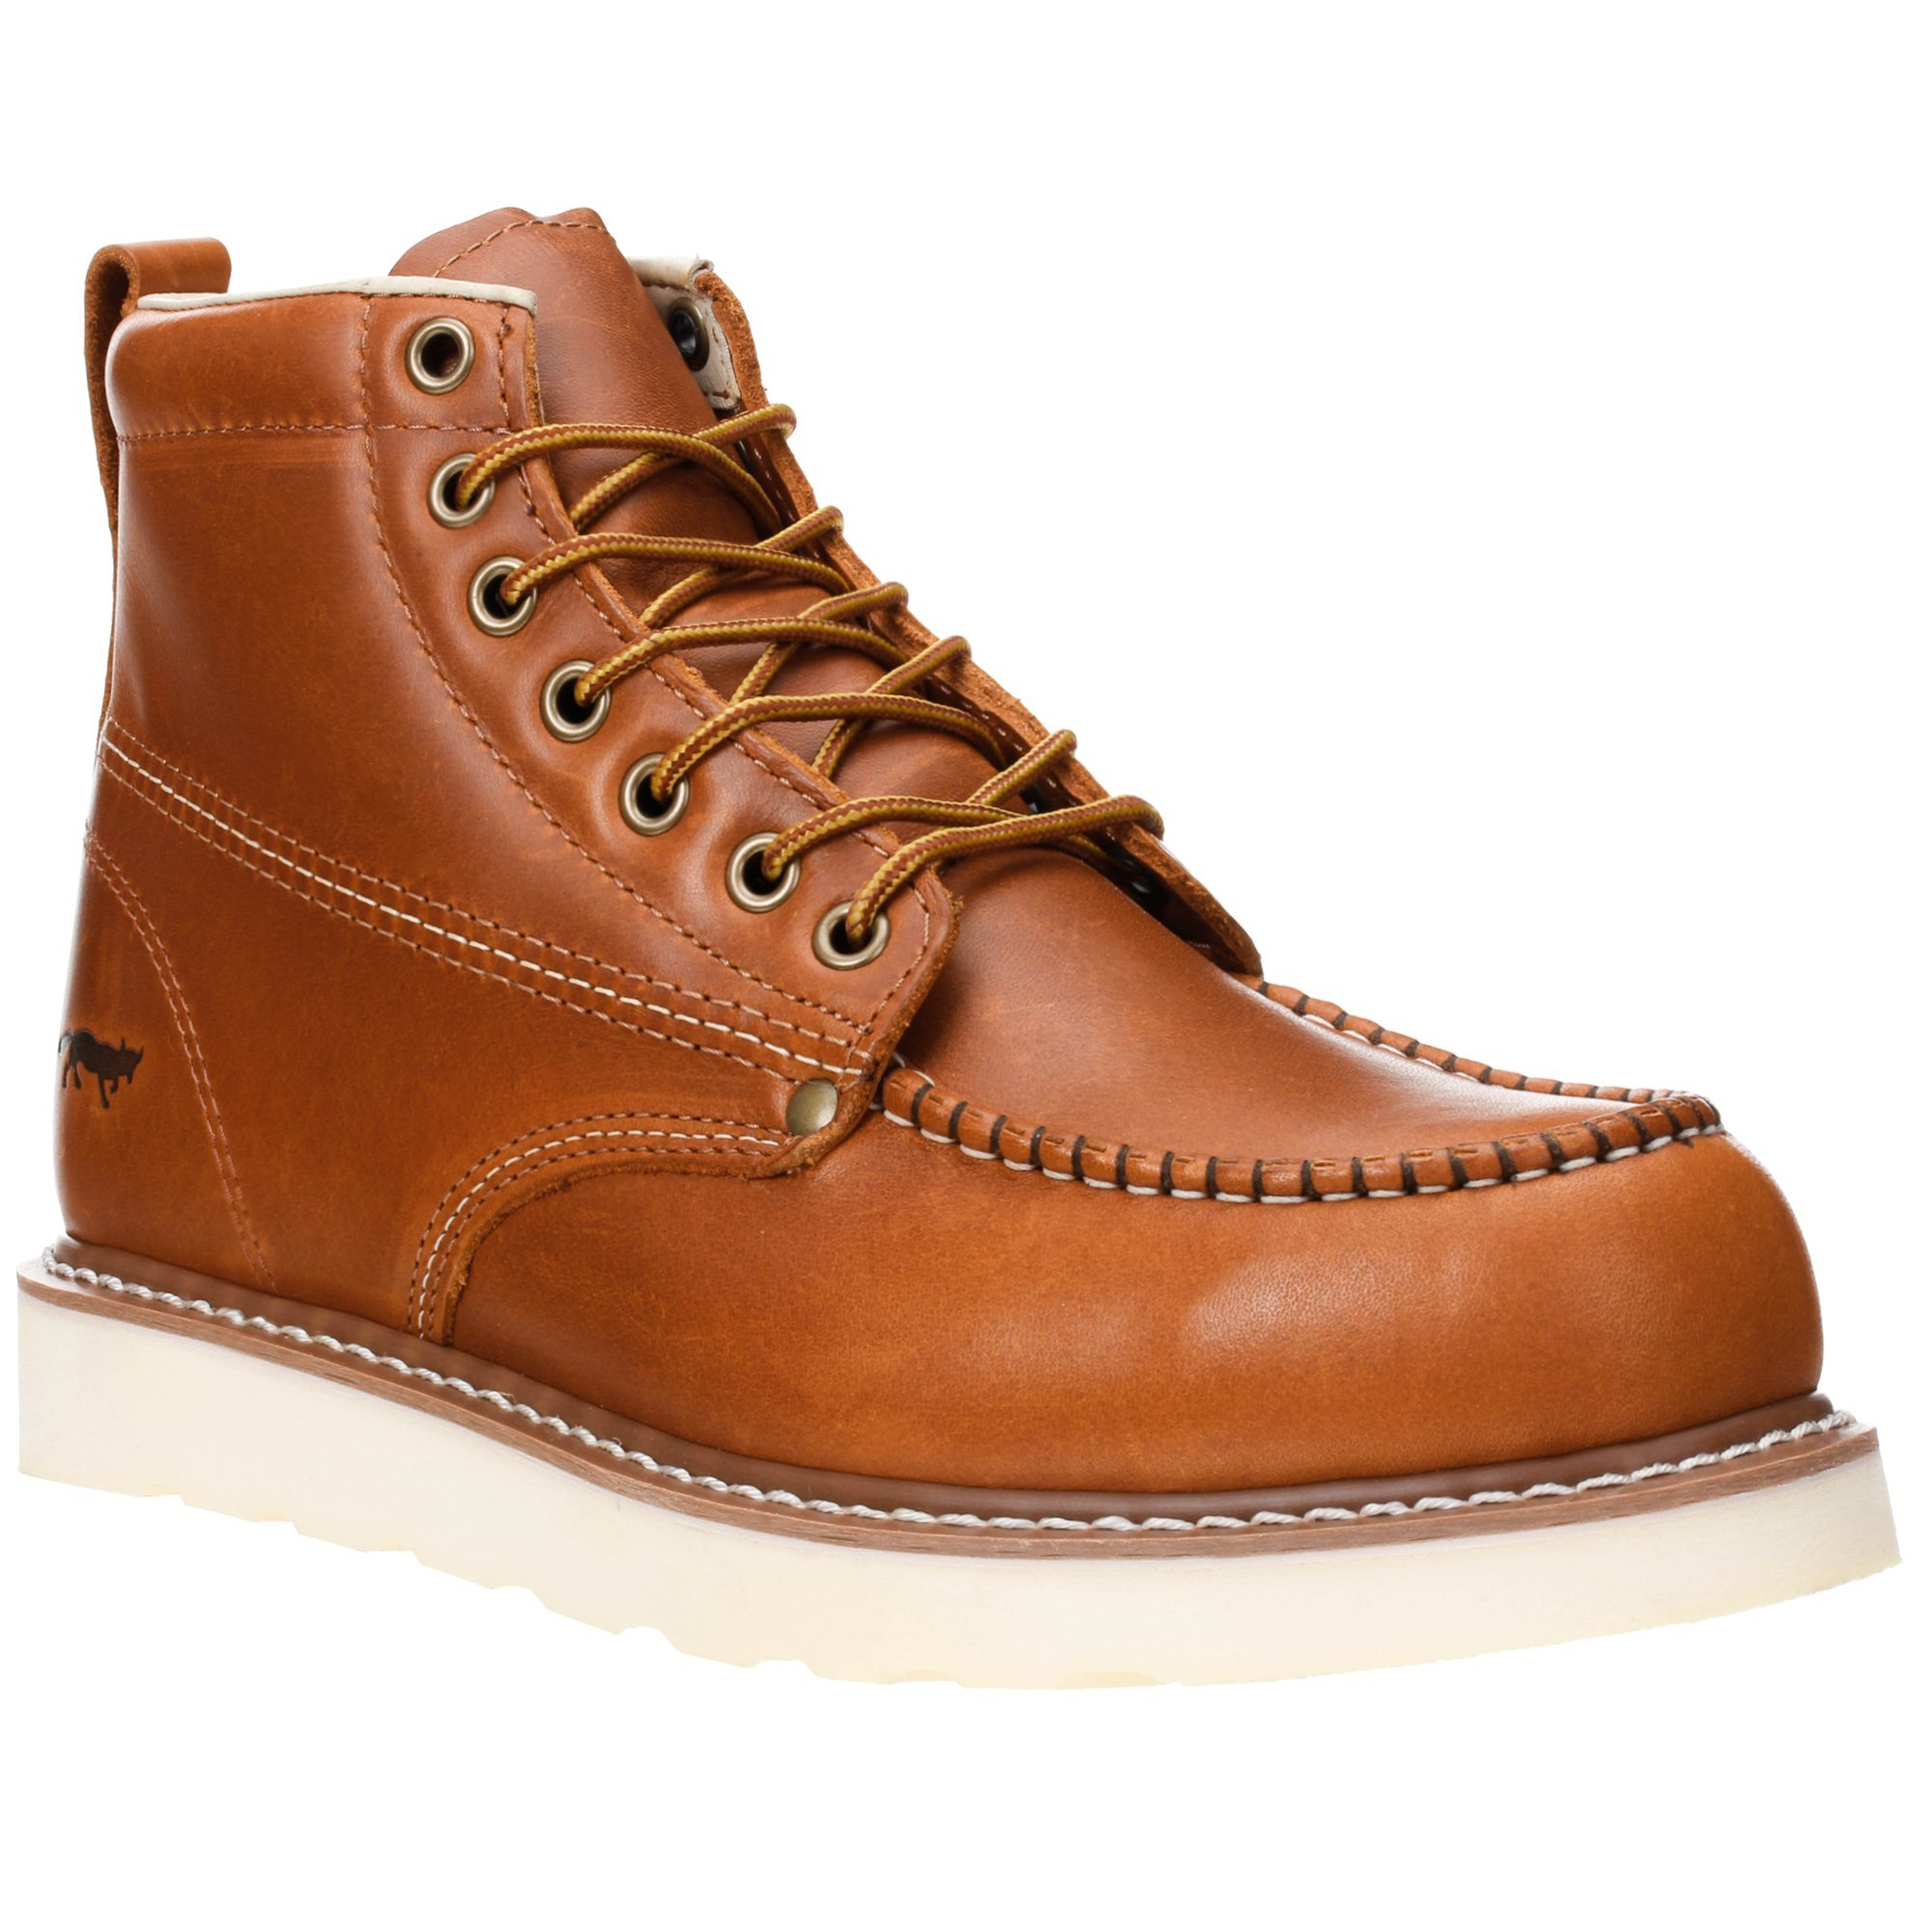 Golden Fox Work Boots 6'' Men's Moc Toe Wedge Comfortable Boot for Construction Brun Size 12 D(M) US